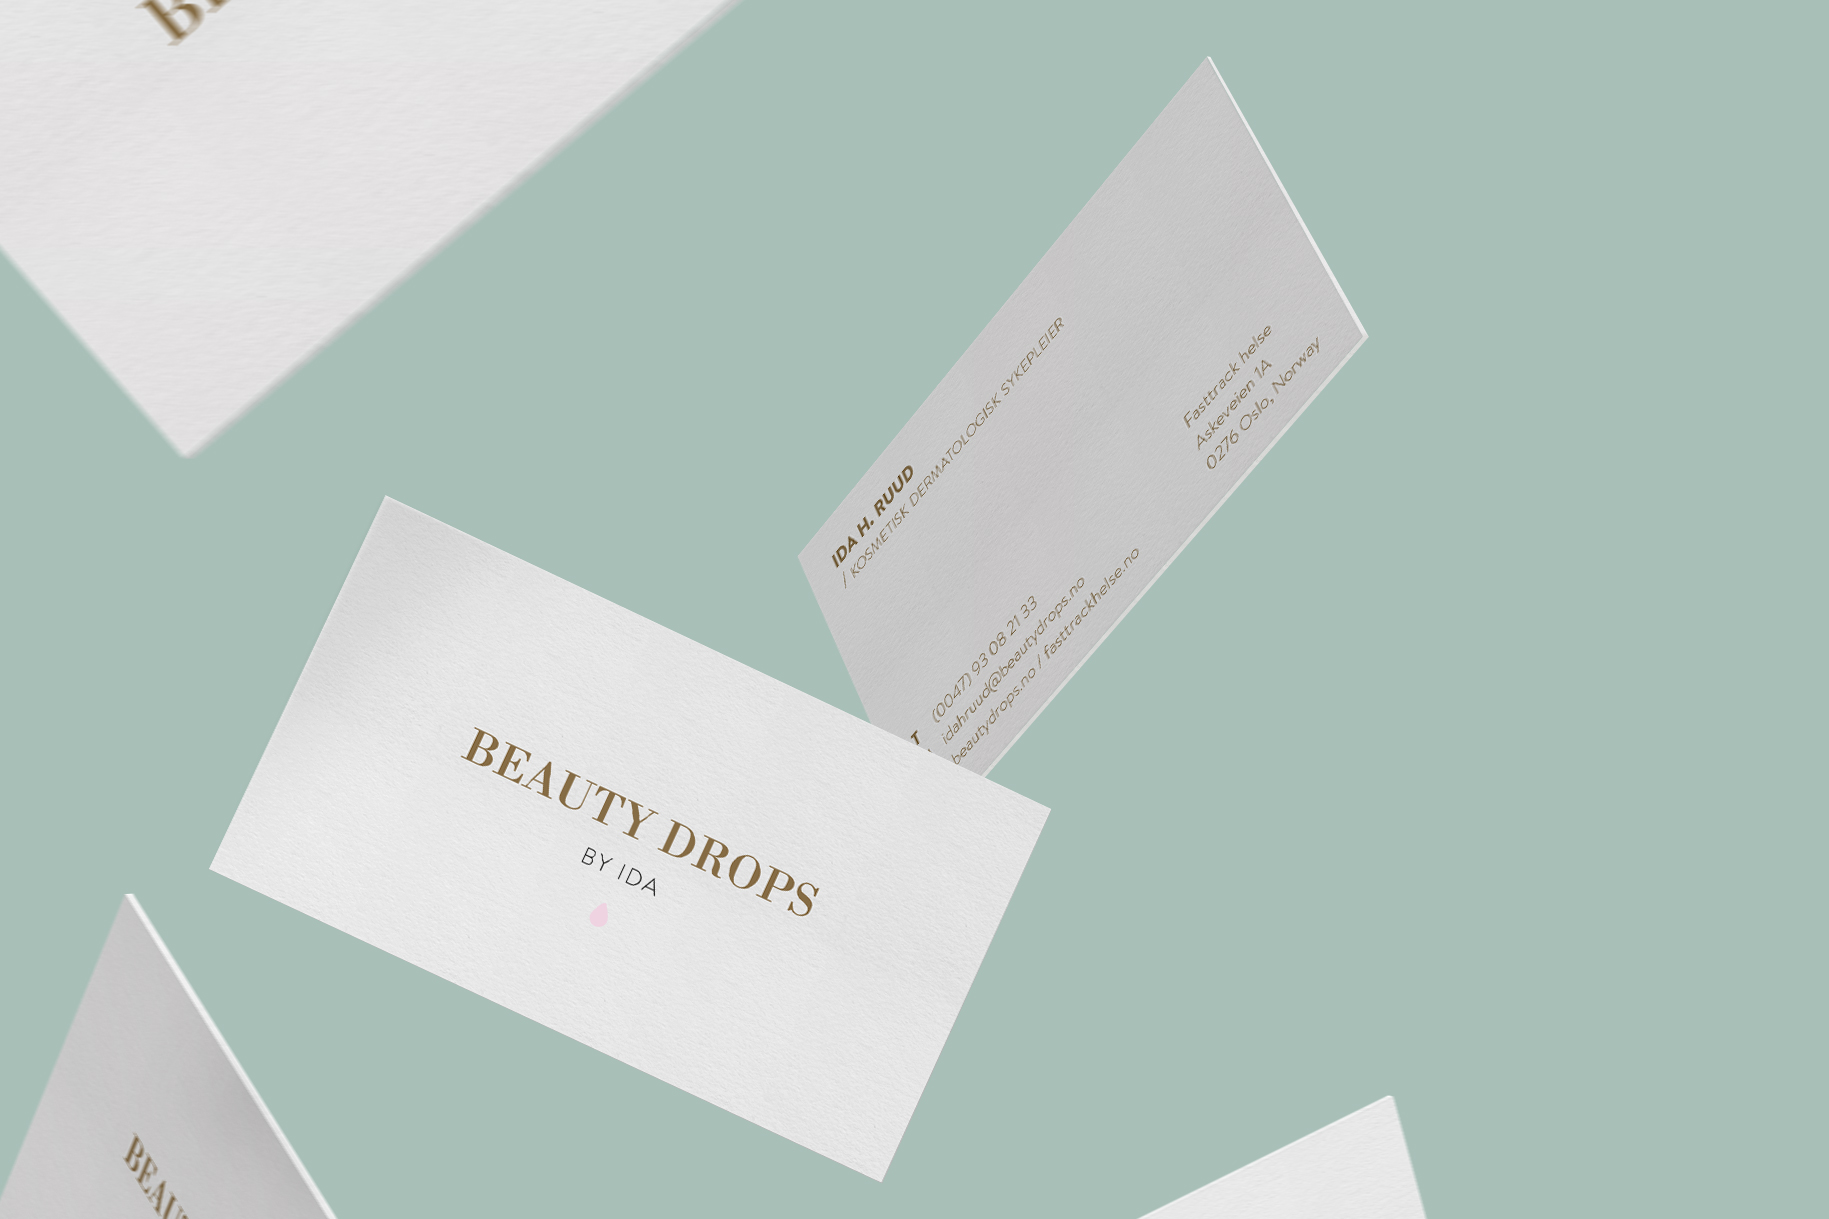 BeautyDrops_businesscard_mockup_02